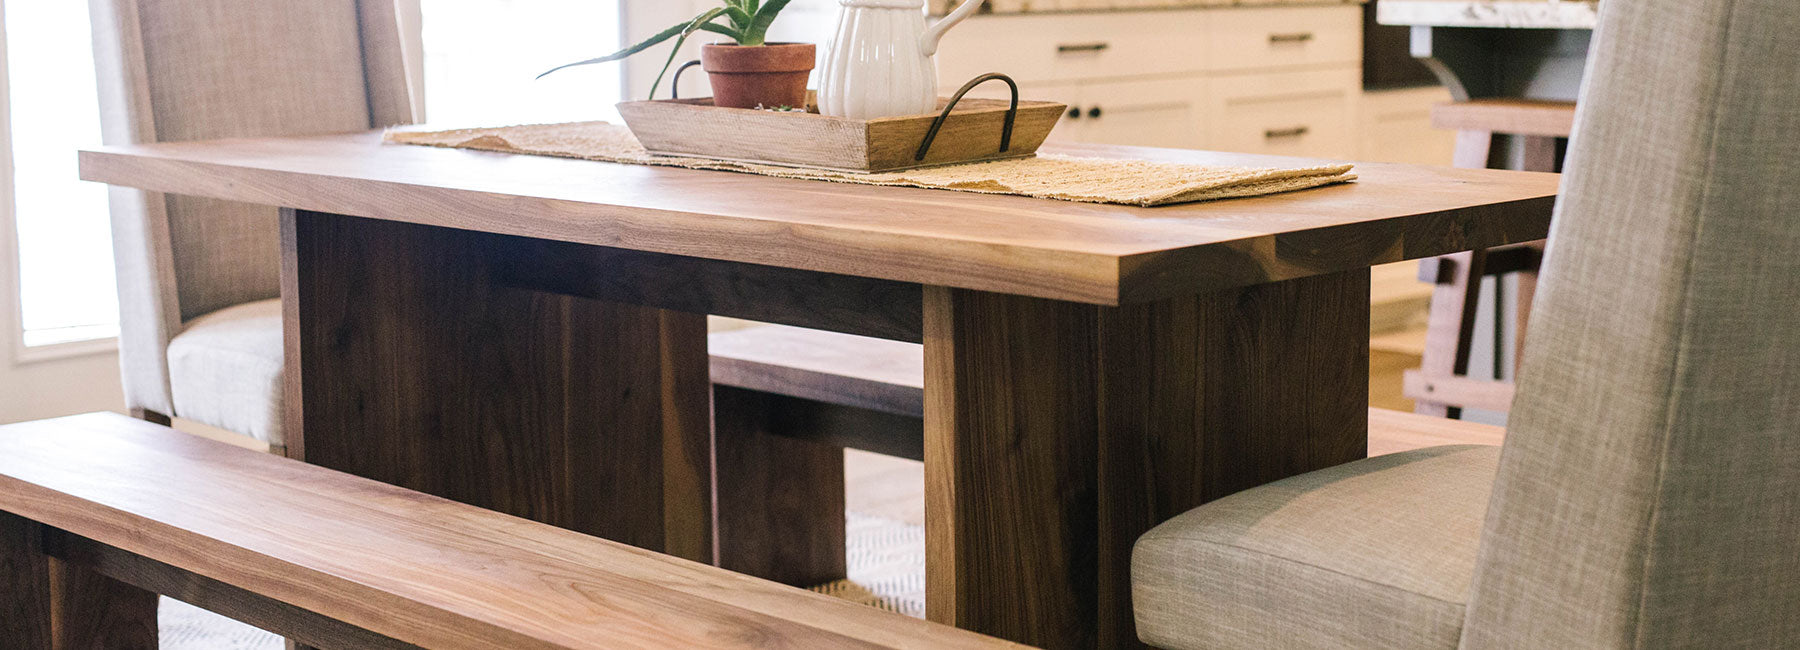 Furniture Arrangement: Are You Doing it Right or Wrong?